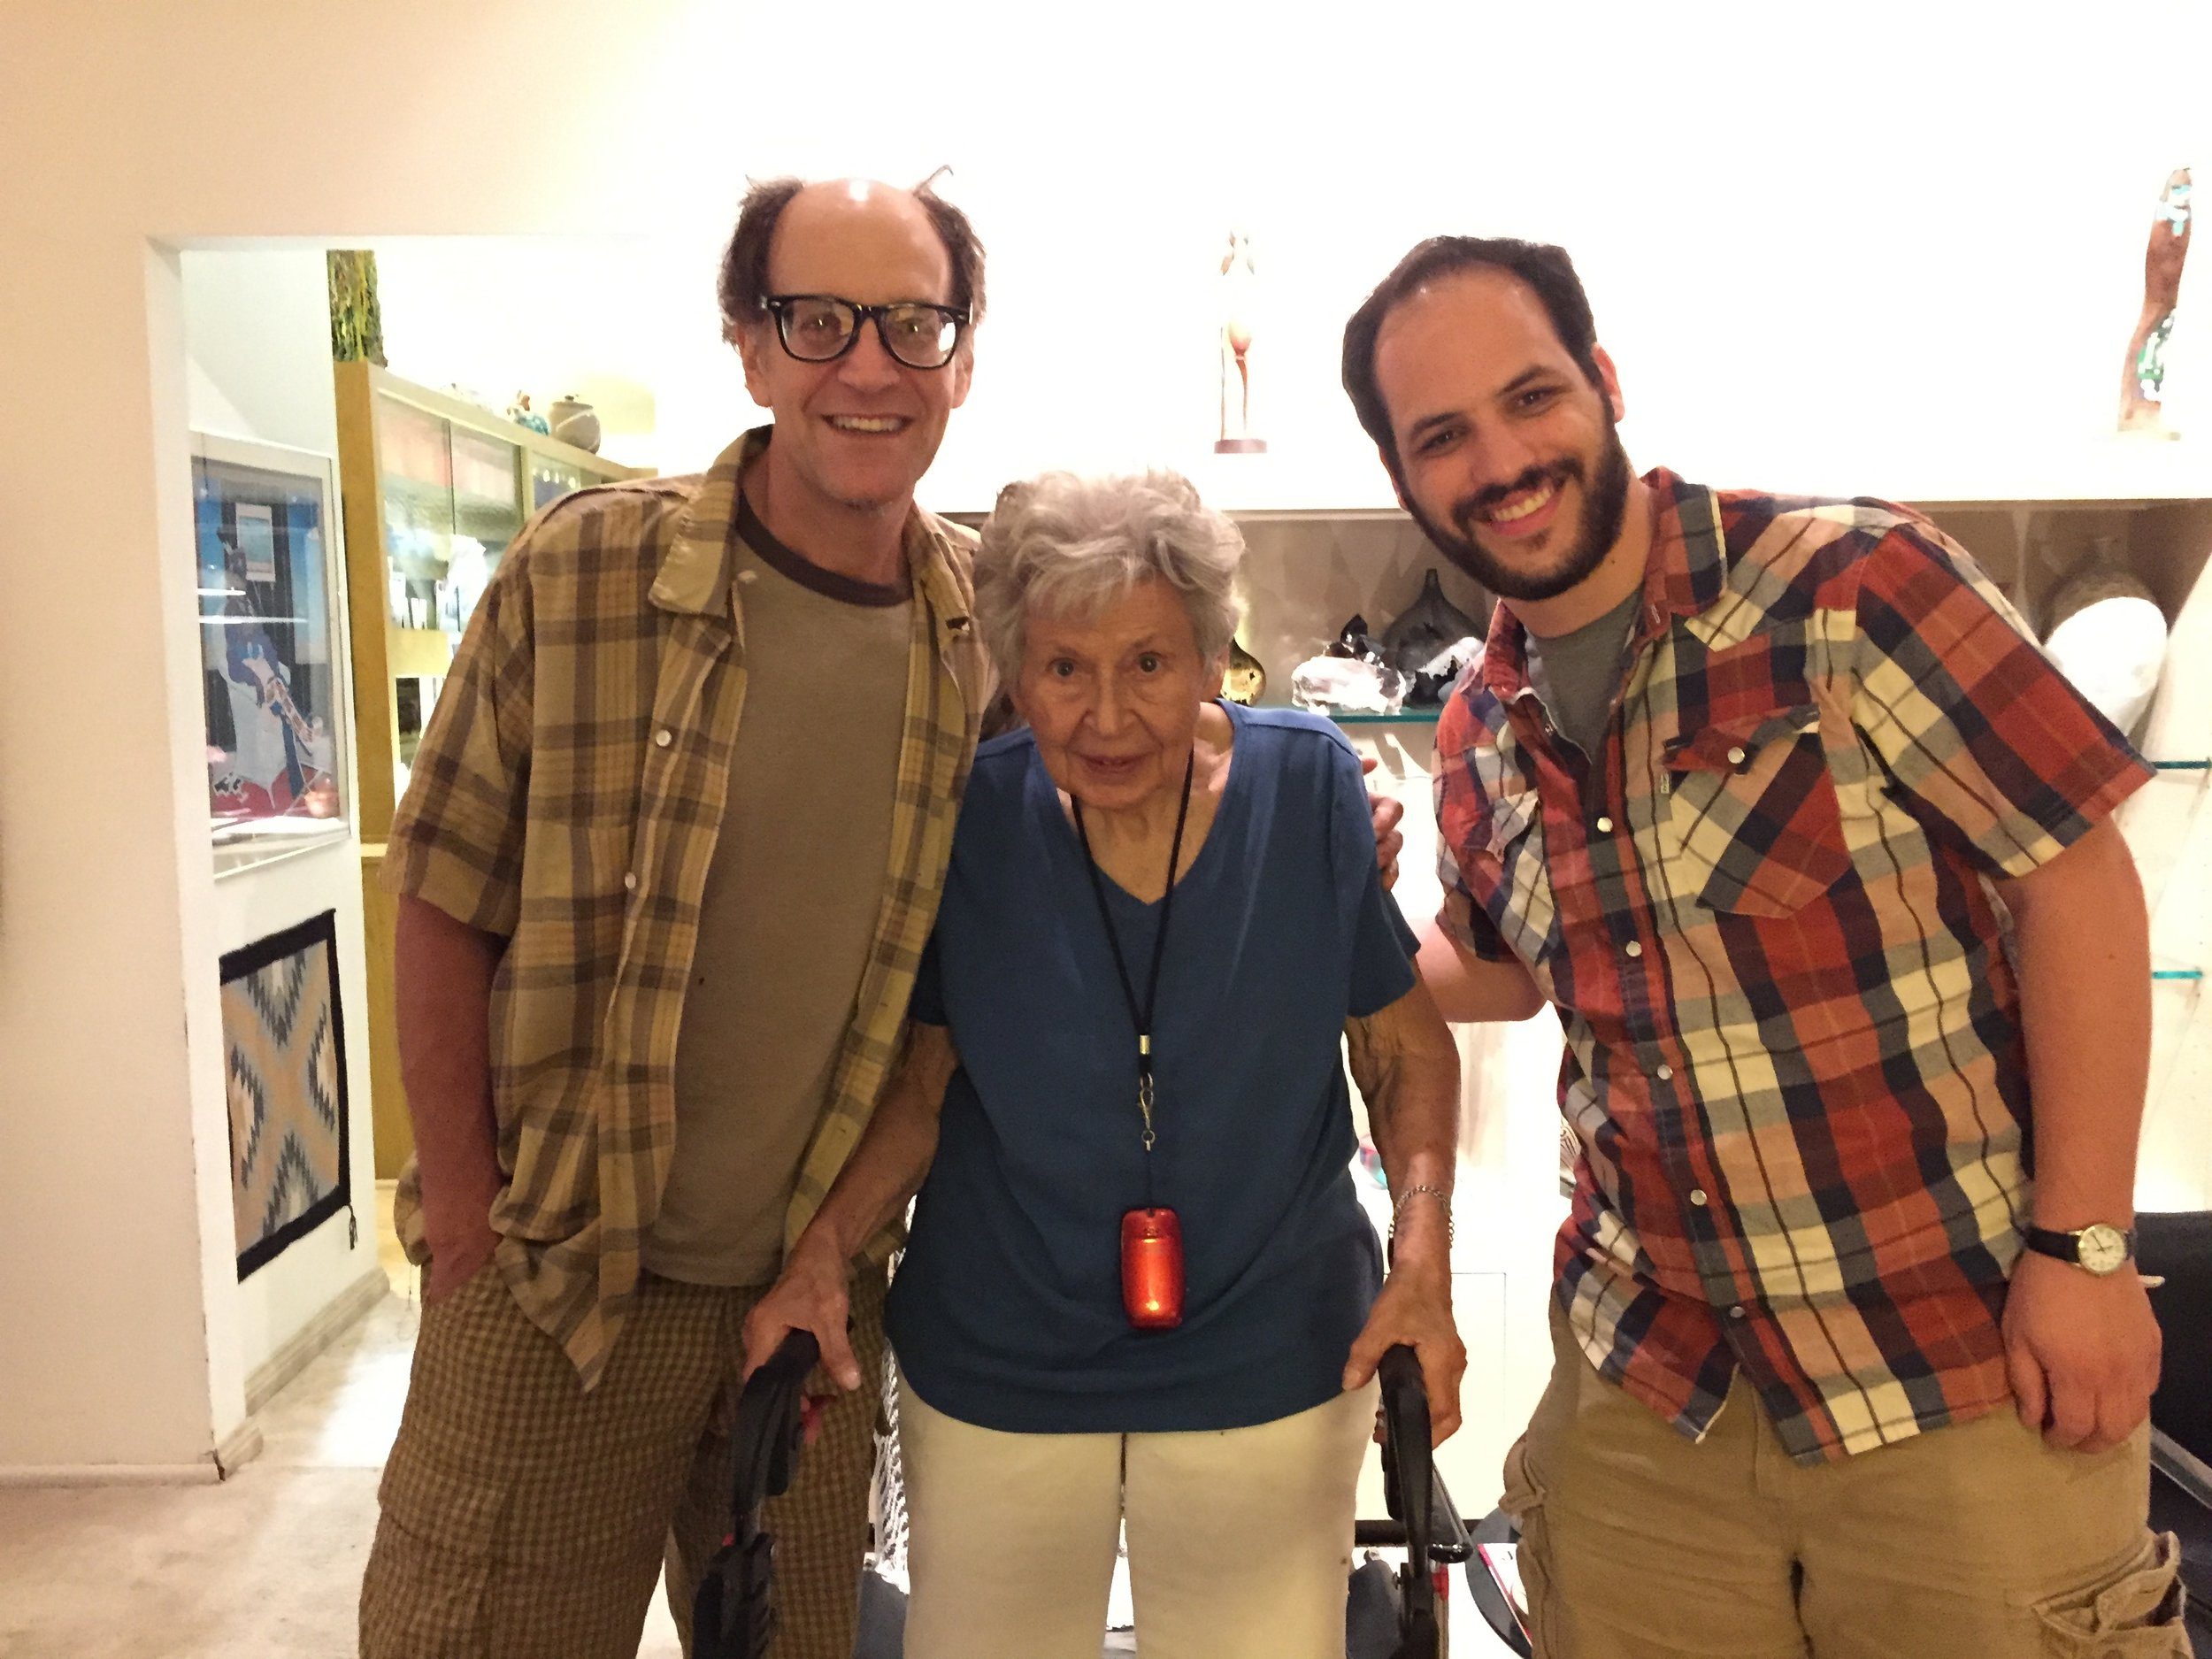 Lee Danziger, his mother Zelda and our son Judd Cohen August 2015 Albuquerque, NM